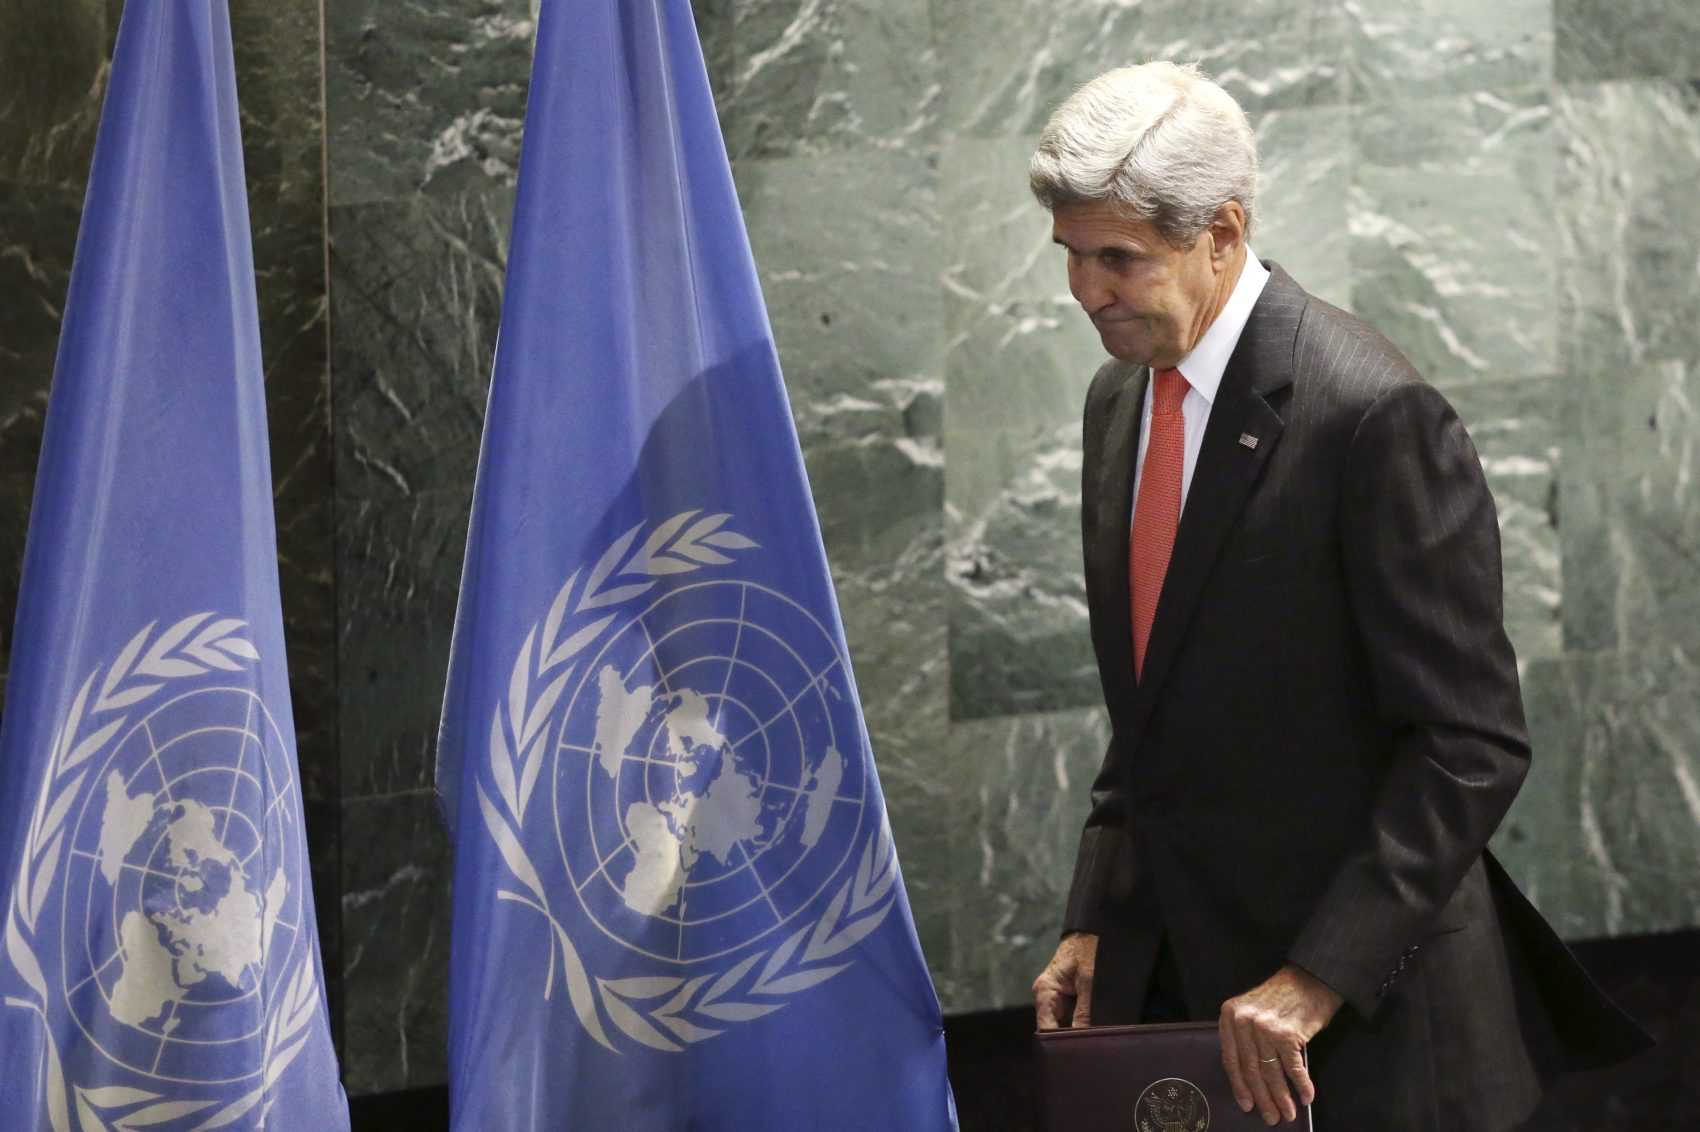 John Kerry will be the keynote speaker at the climate summit in Boston. (Seth Wenig/AP)